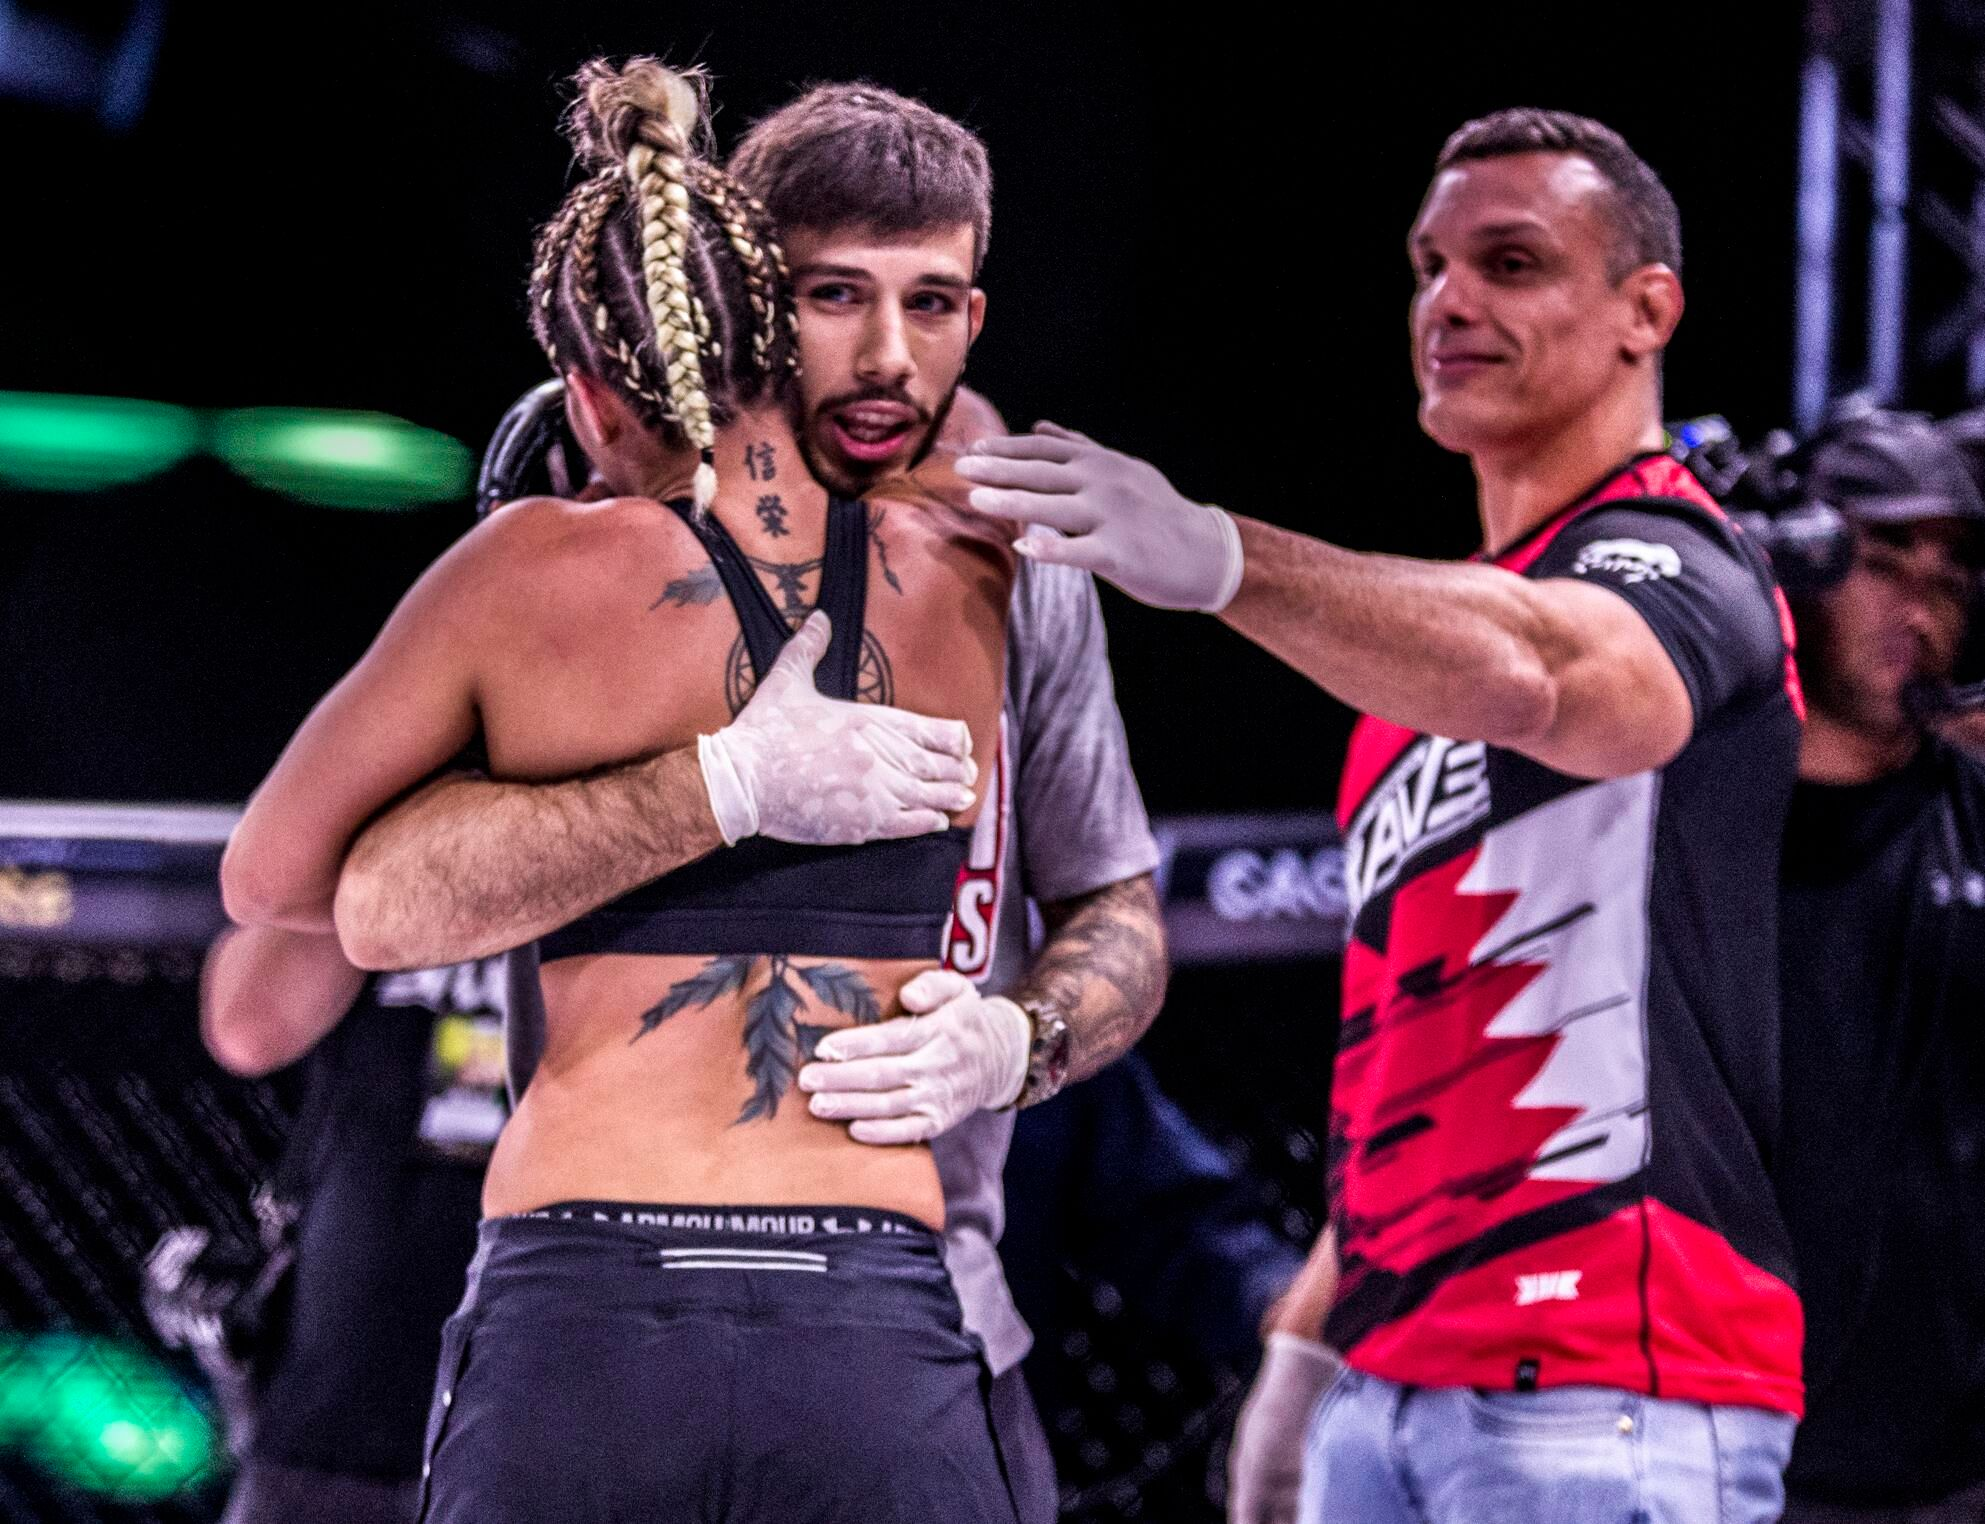 How a family tragedy shaped and changed Matheus Nicolau's life -